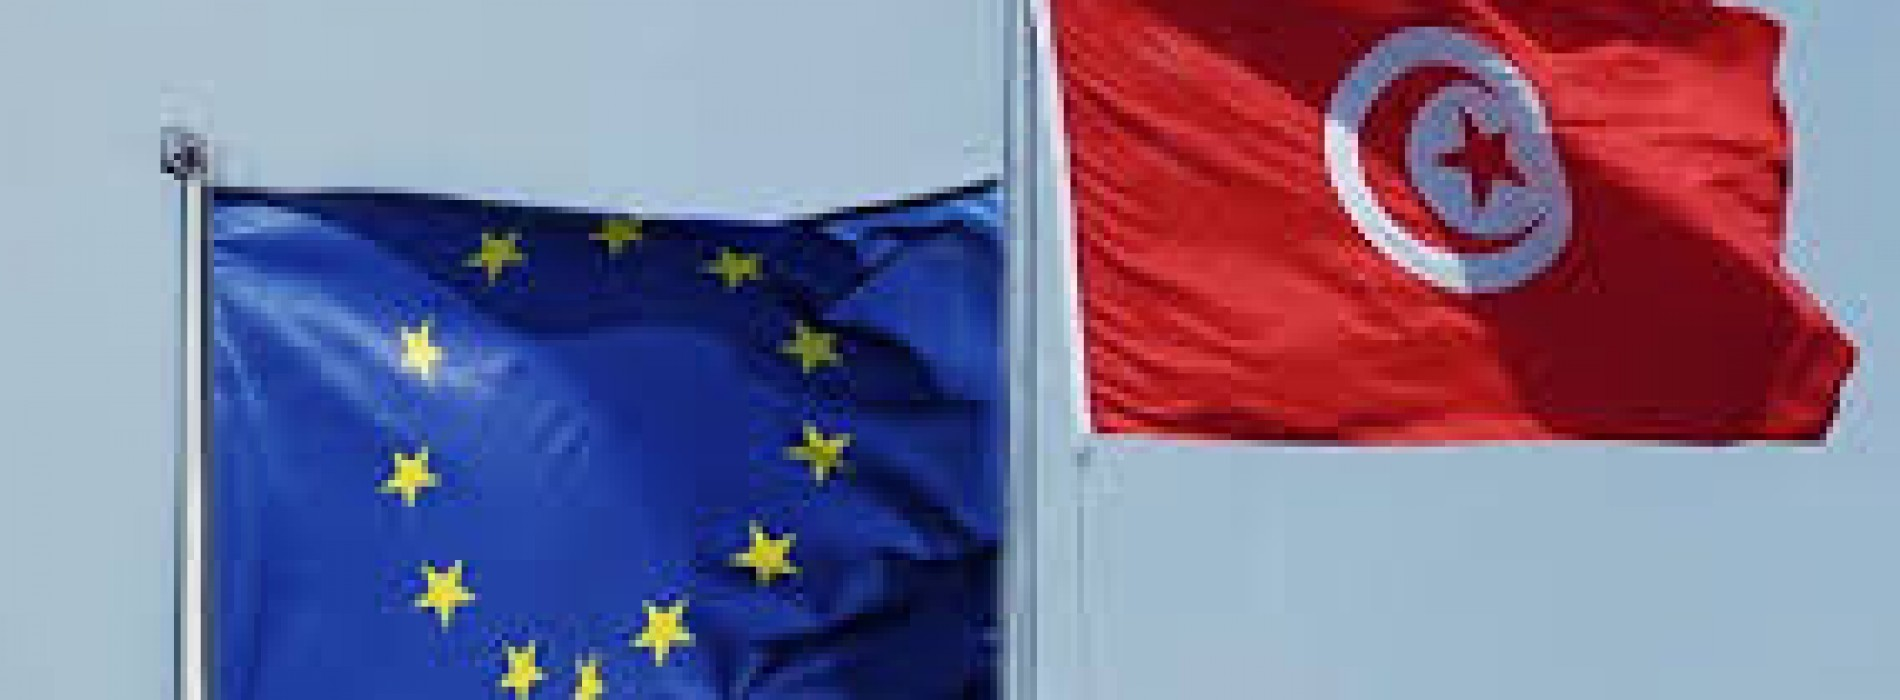 Tunisia: European funding to modernize administration